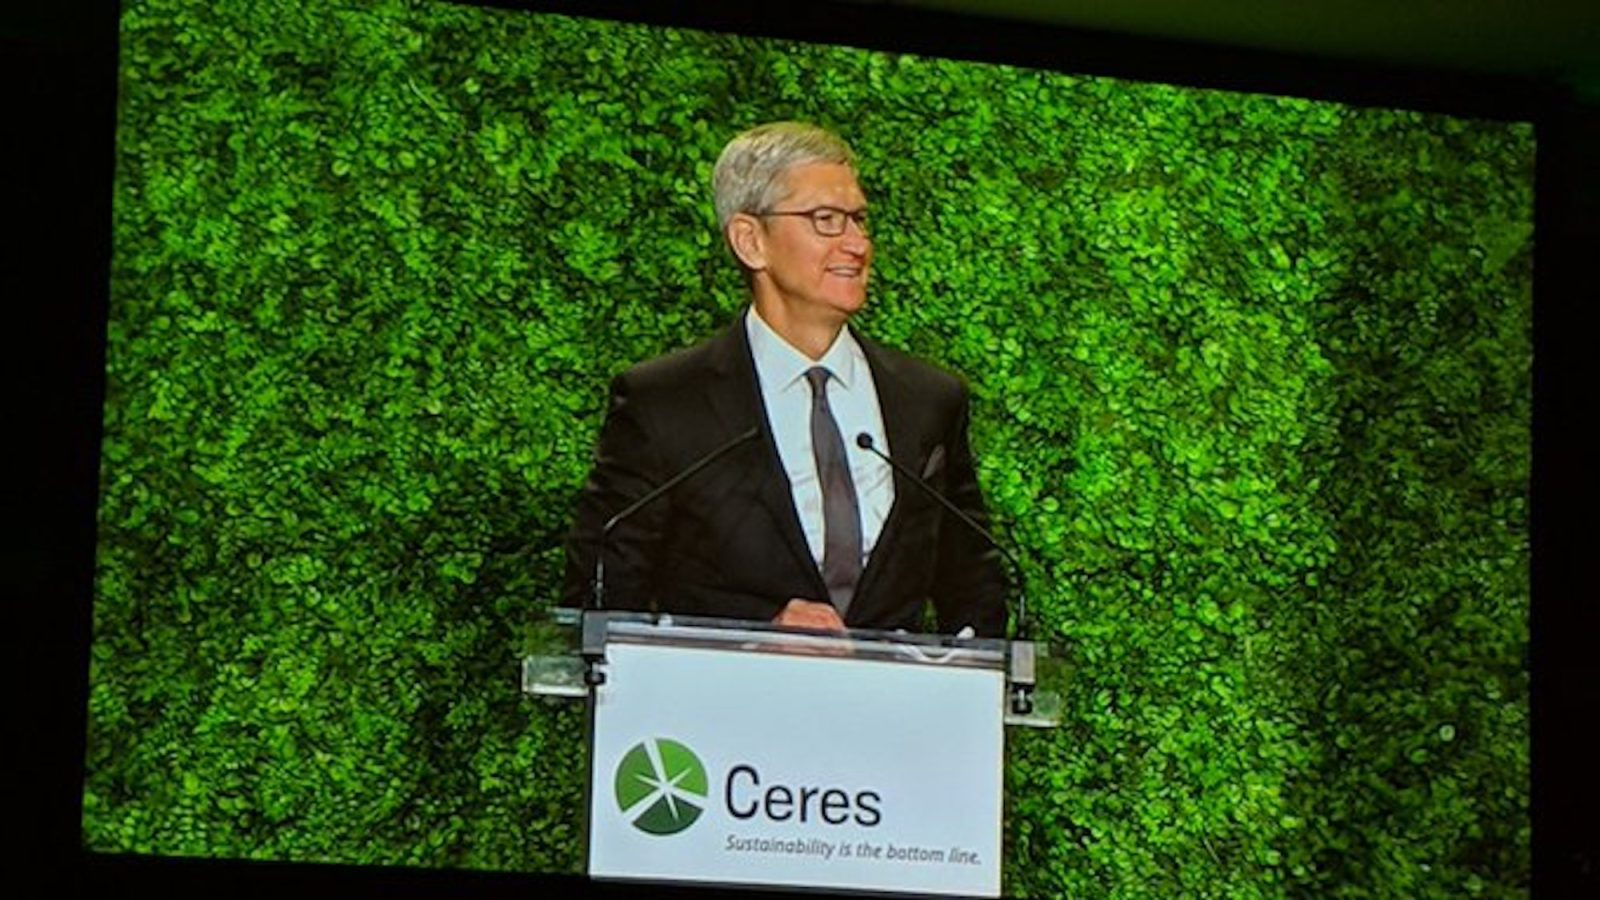 Tim Cook delivers keynote address at Ceres sustainability gala in New York City